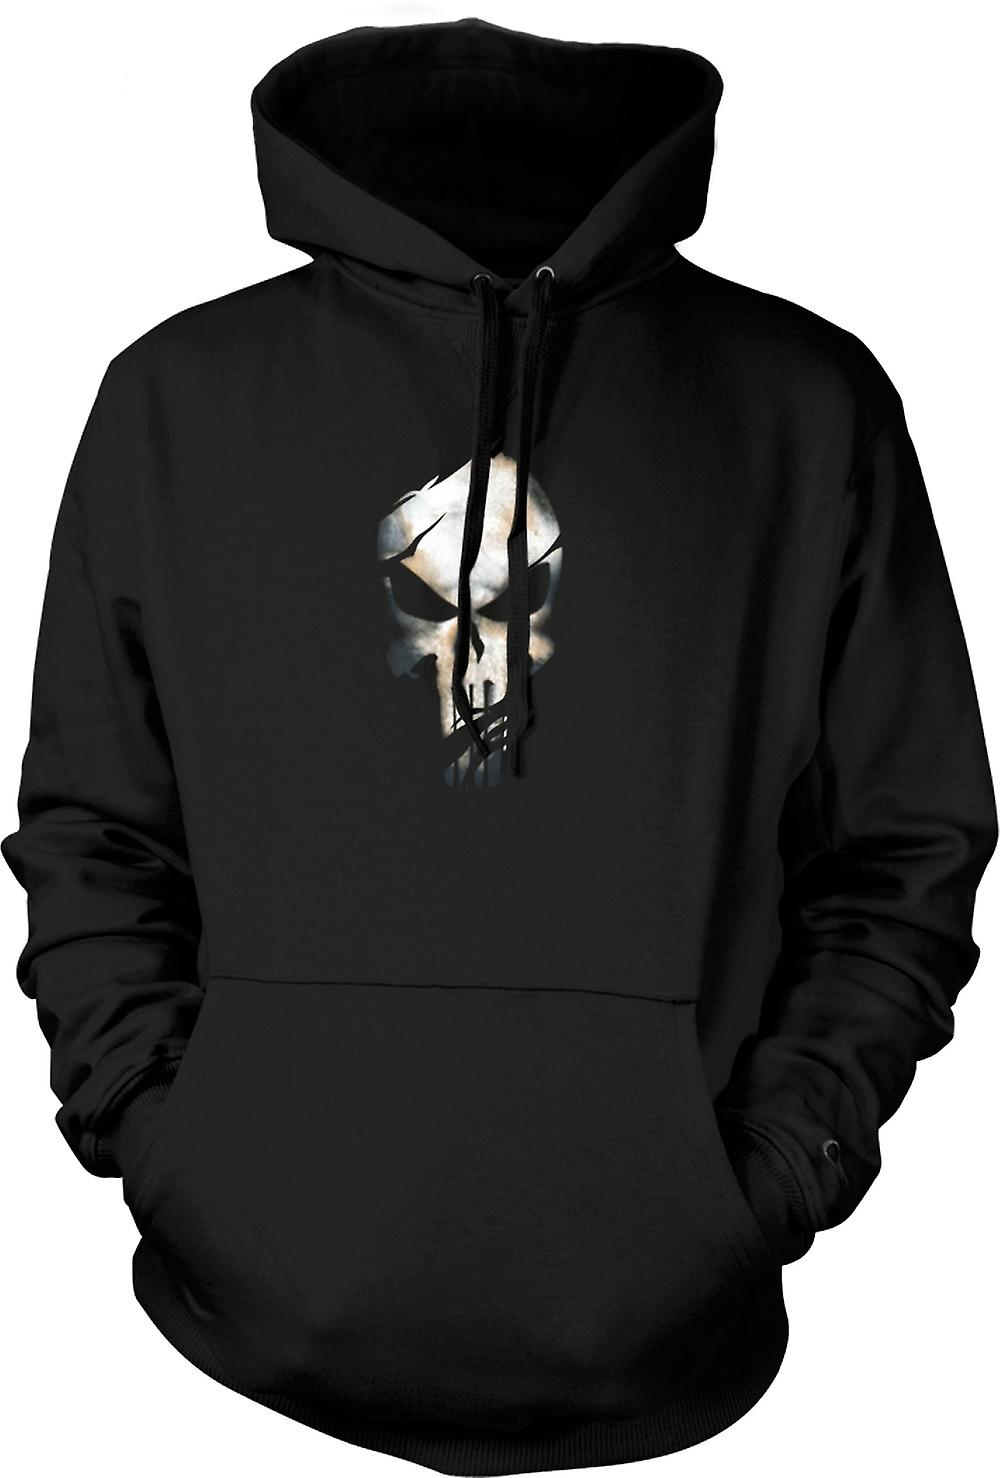 Mens Hoodie - The Punisher - Ripped Effect